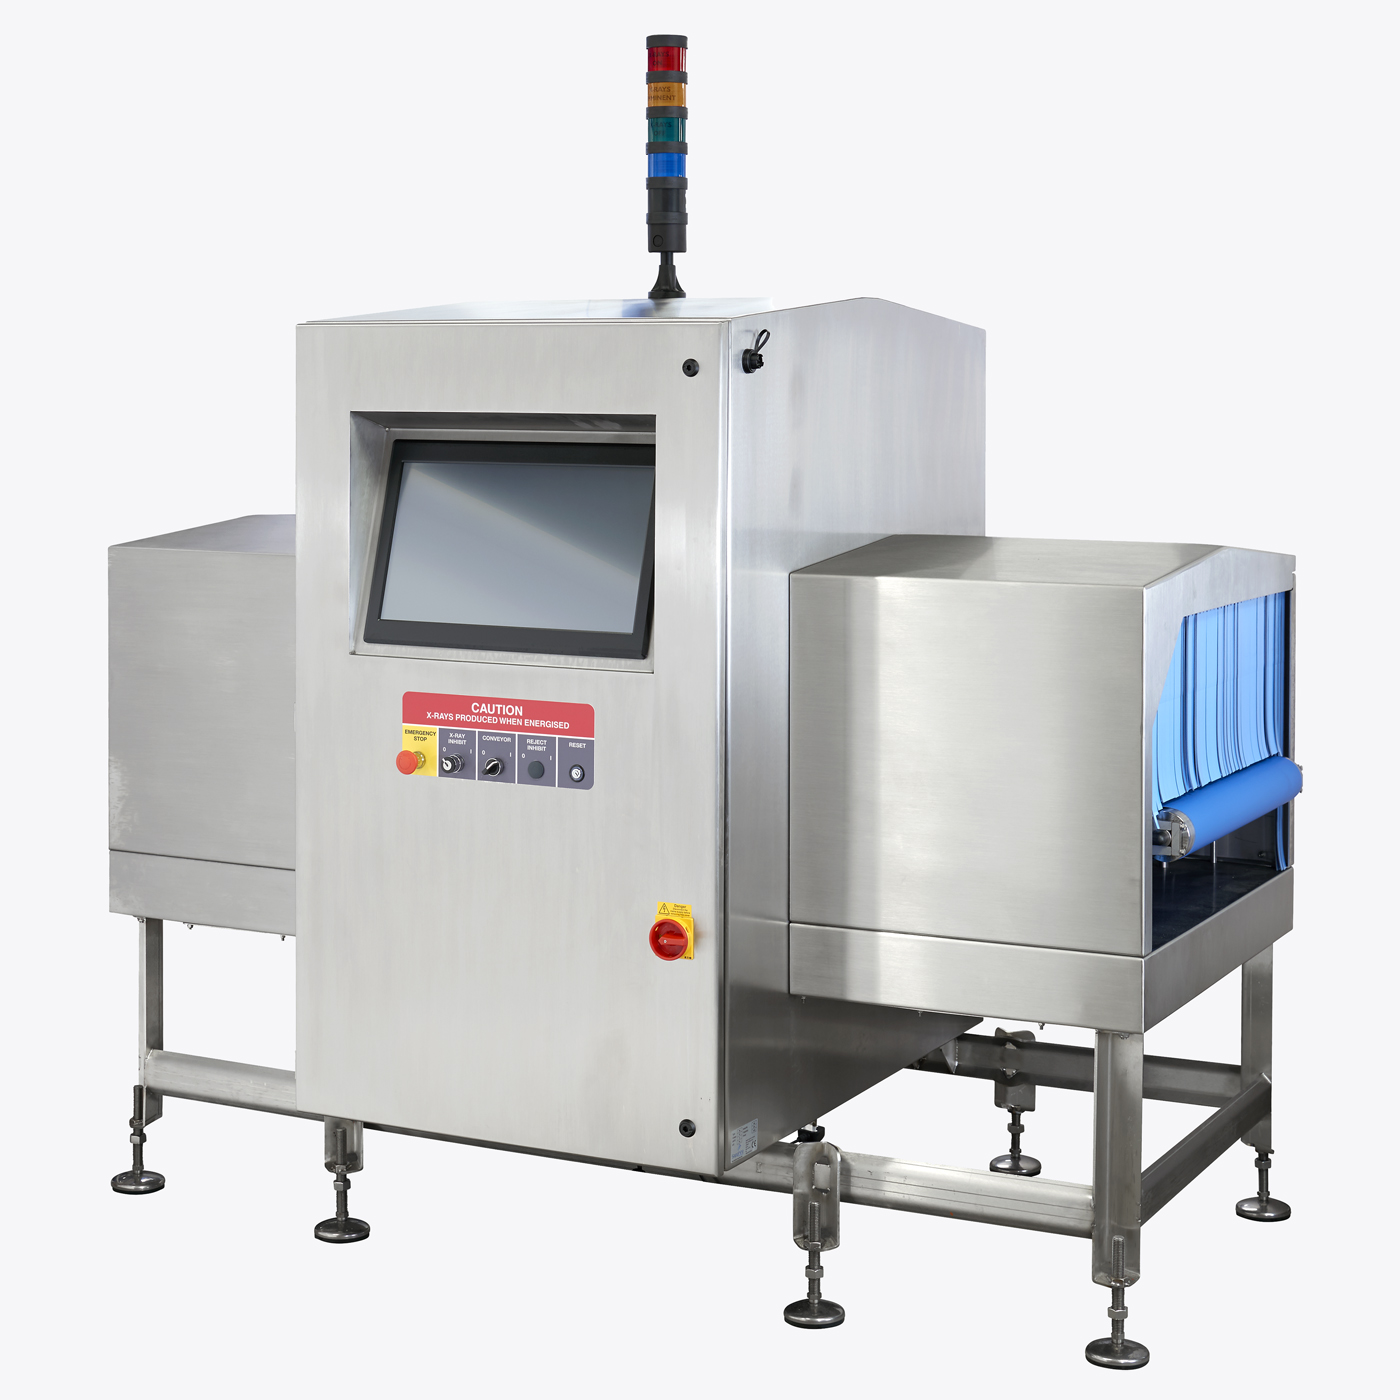 G40 x-ray system